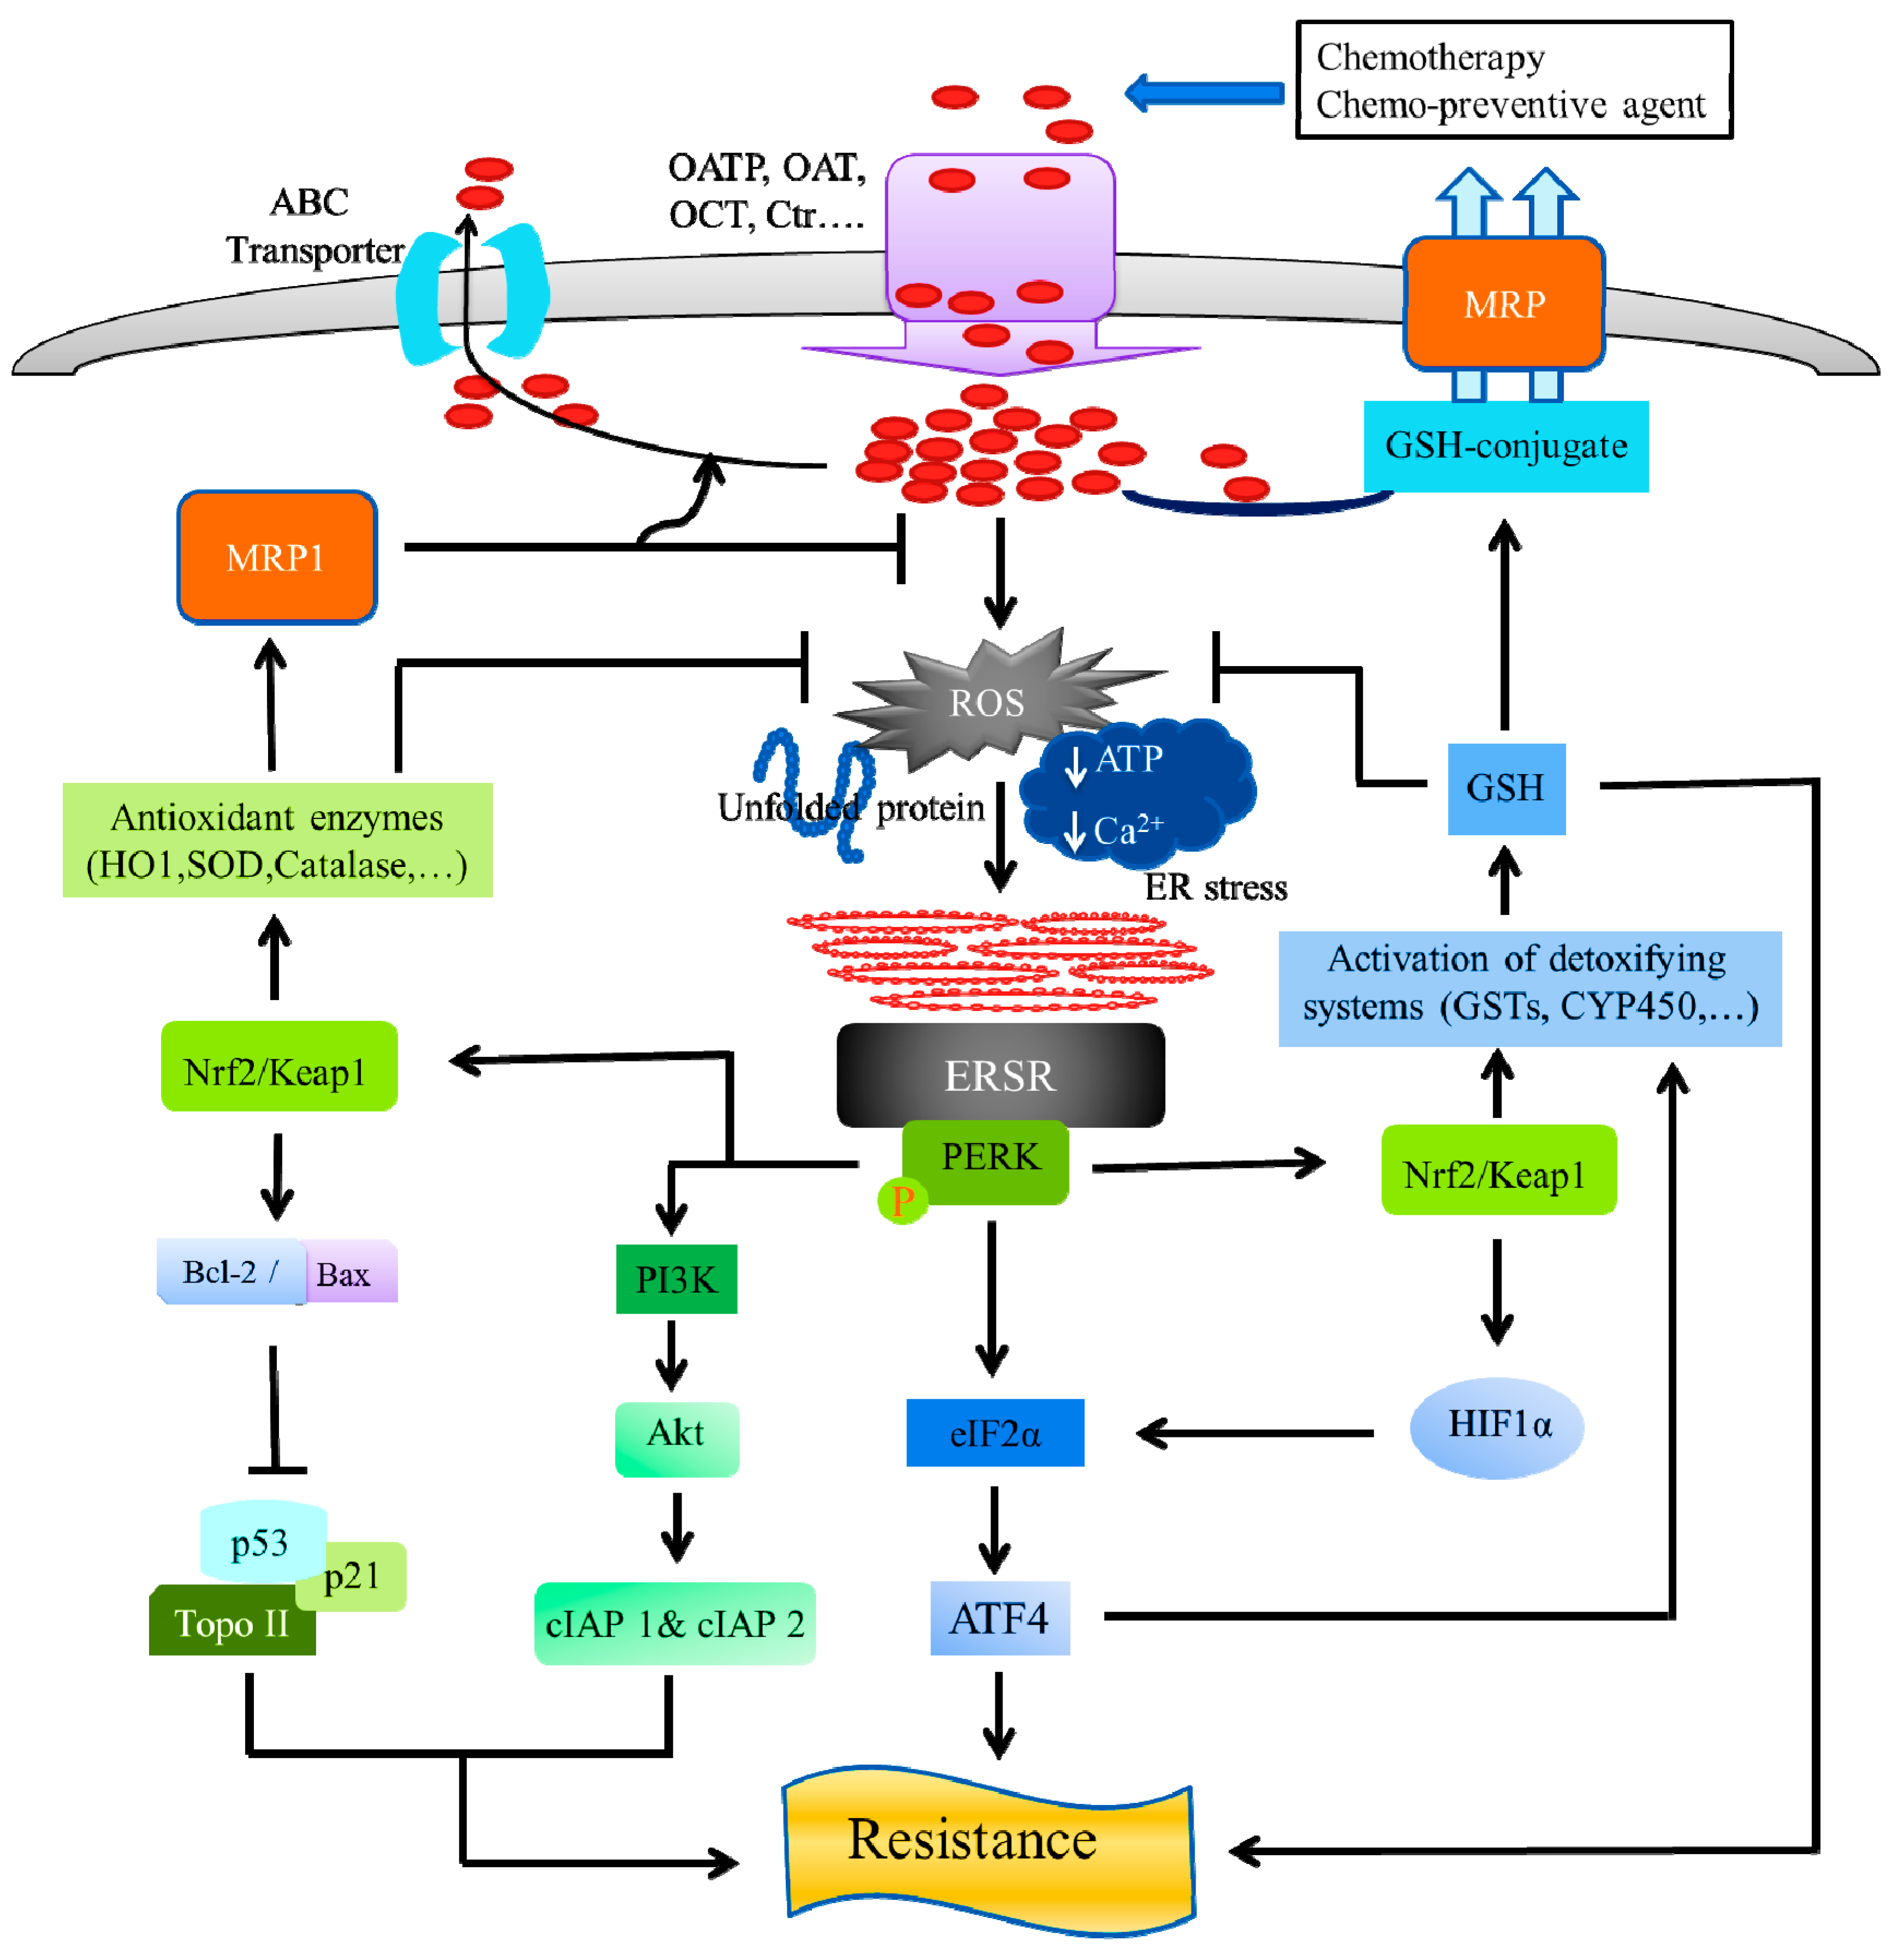 Cancers Free Full Text Chemotherapy Resistance Explained Through Endoplasmic Reticulum Stress Dependent Signaling Html